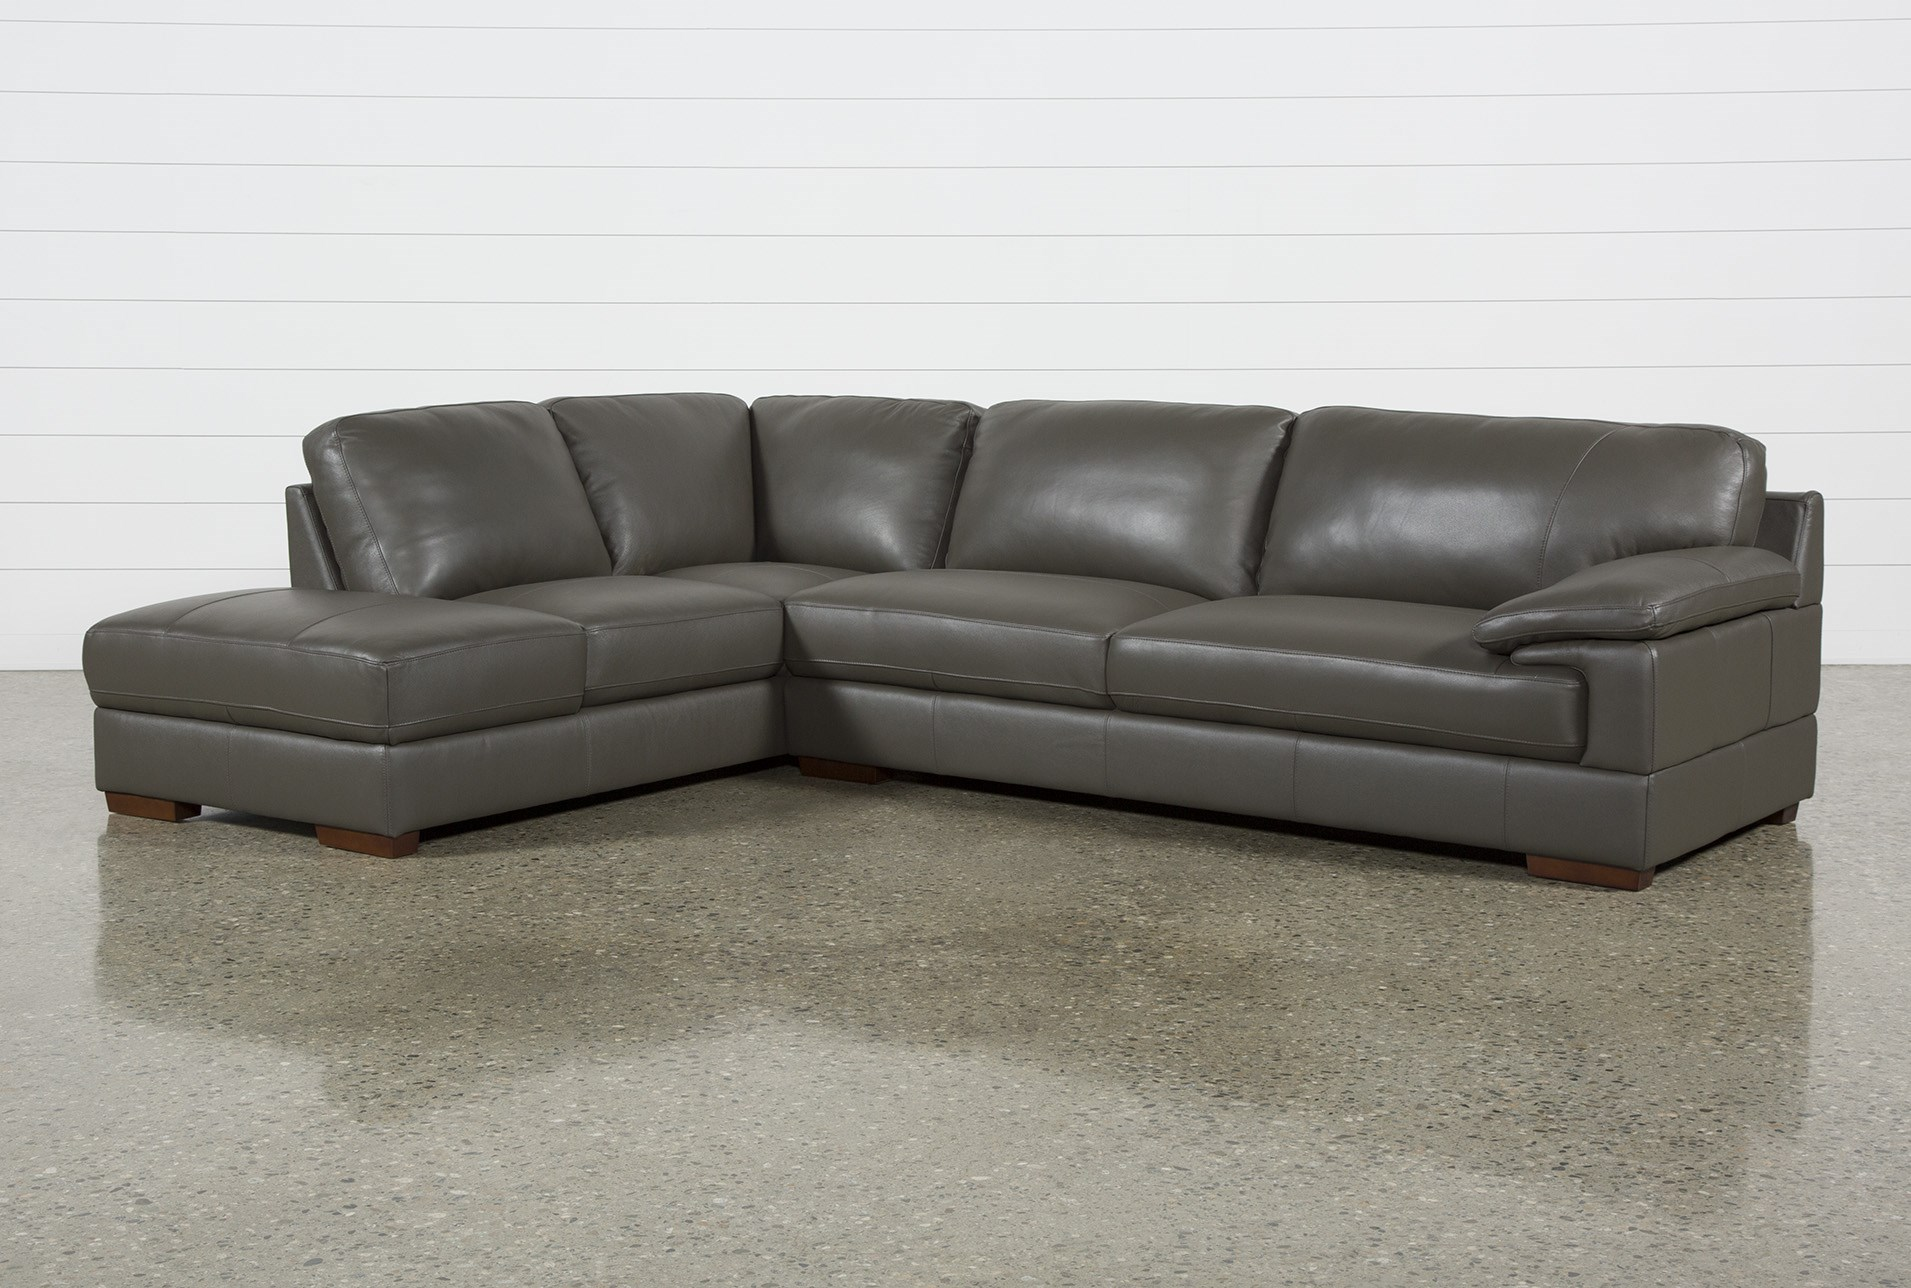 Nico Dark Grey Leather Sectional With Left Arm Facing Armless Storage Chaise